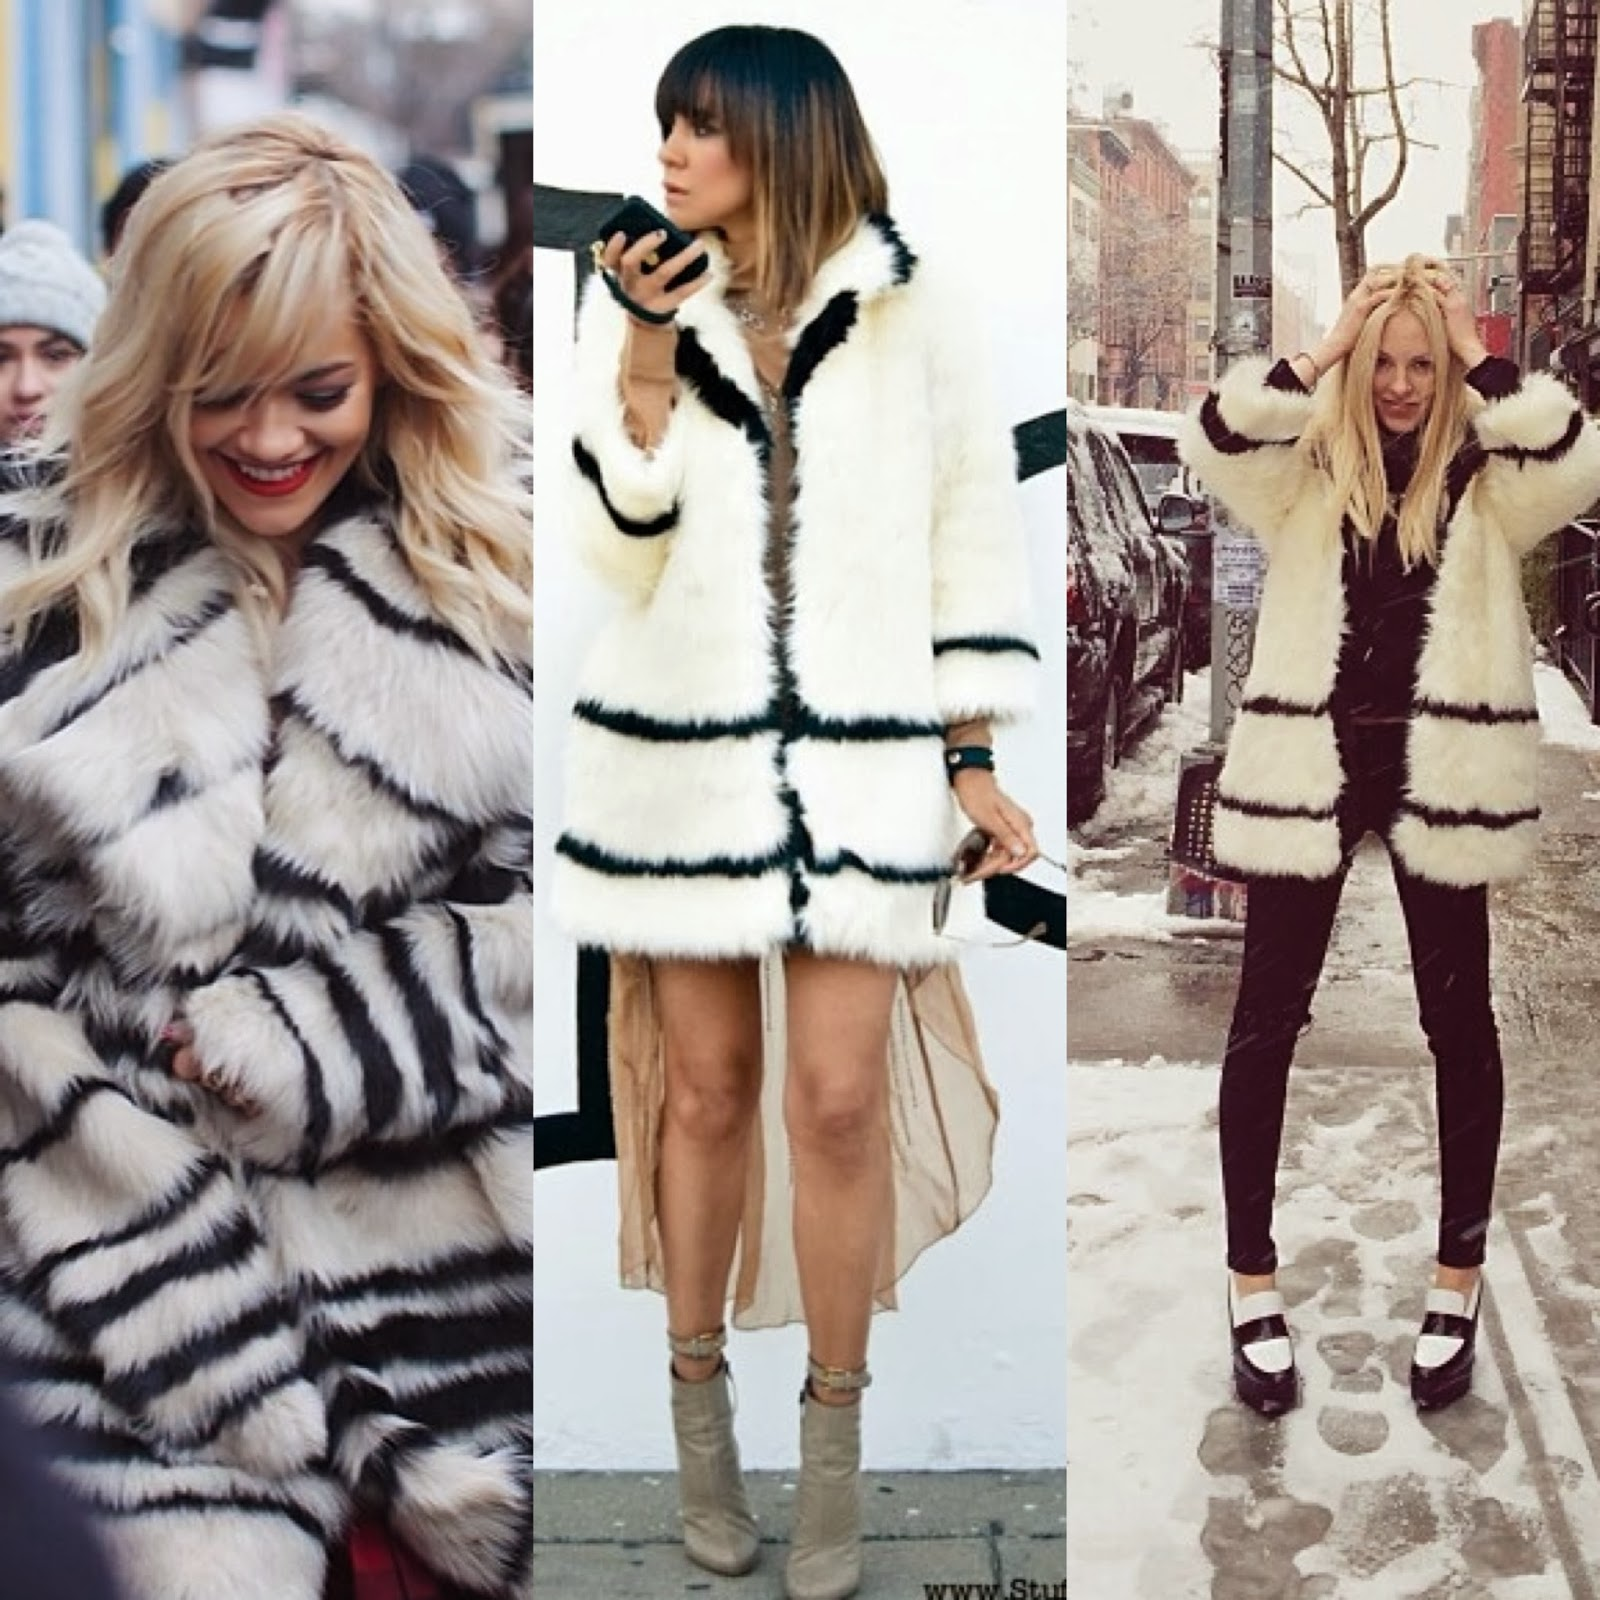 Faux fur, Fur at Fashion Week, NYFW,  Street Style, New York Fashion Week Street Style, Fur, Rita Ora, Shea Marie, Peace Love Shea, Fashion Bloggers, Black FAshion Blogger, Taye Hansberry, Stuff She Likes, Fahion Blog,